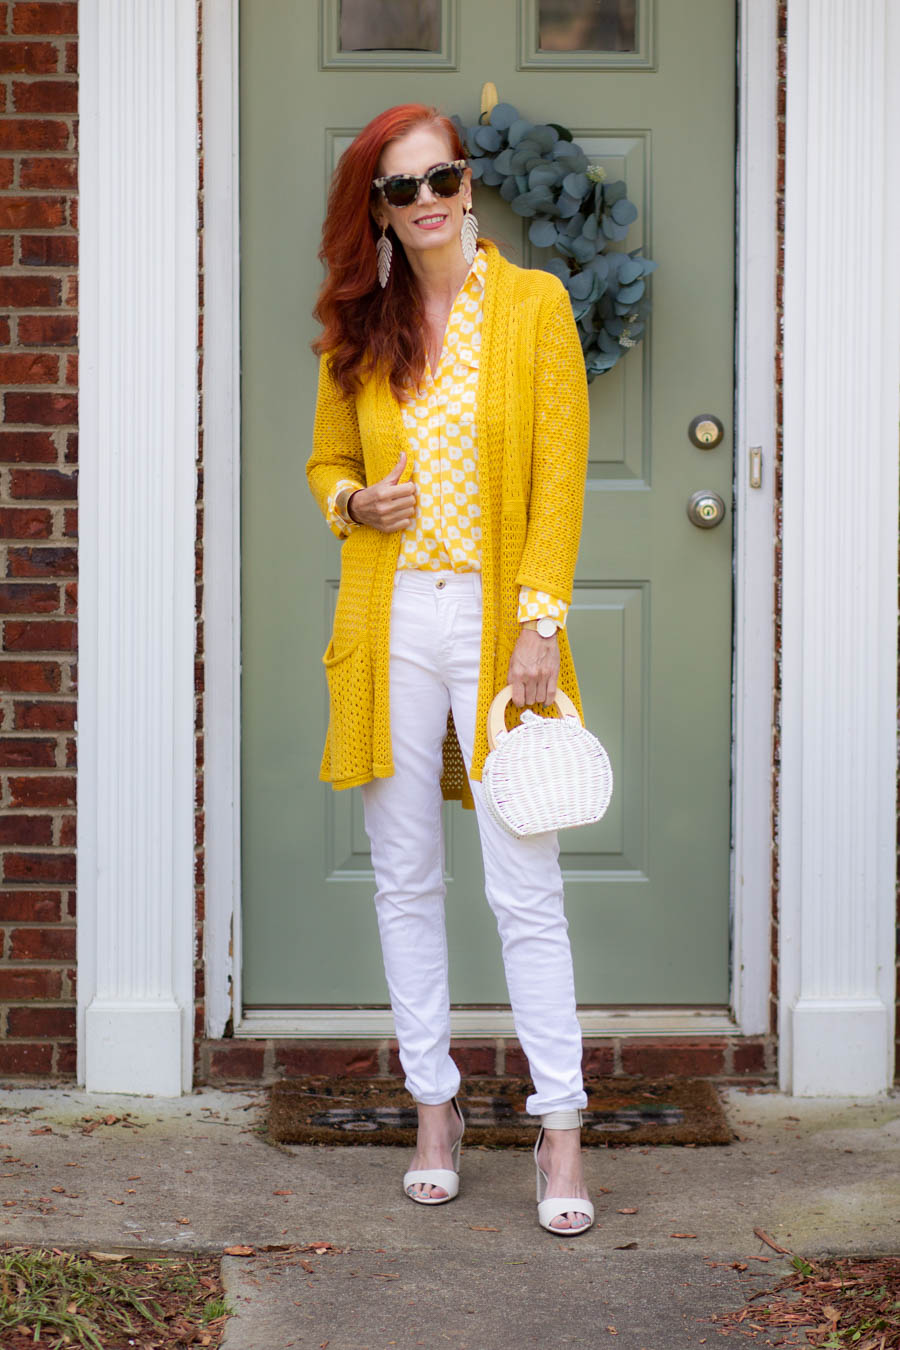 Yellow and white outfit for Spring